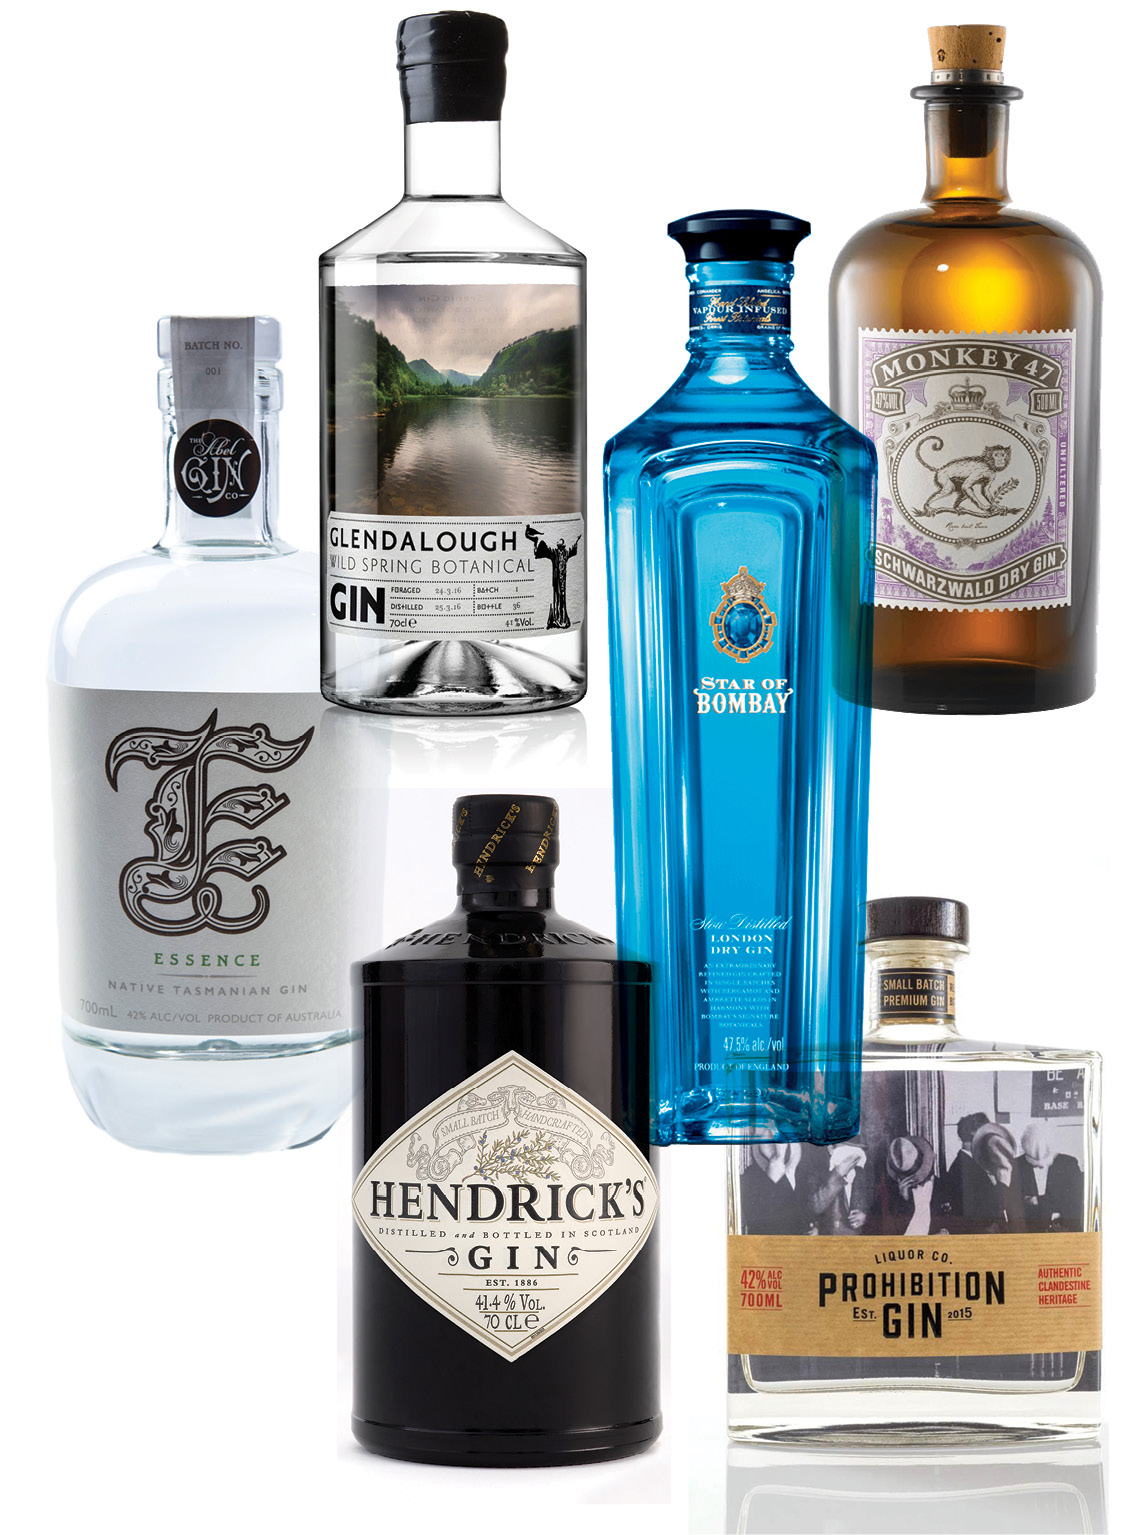 6 great gins from across the globe